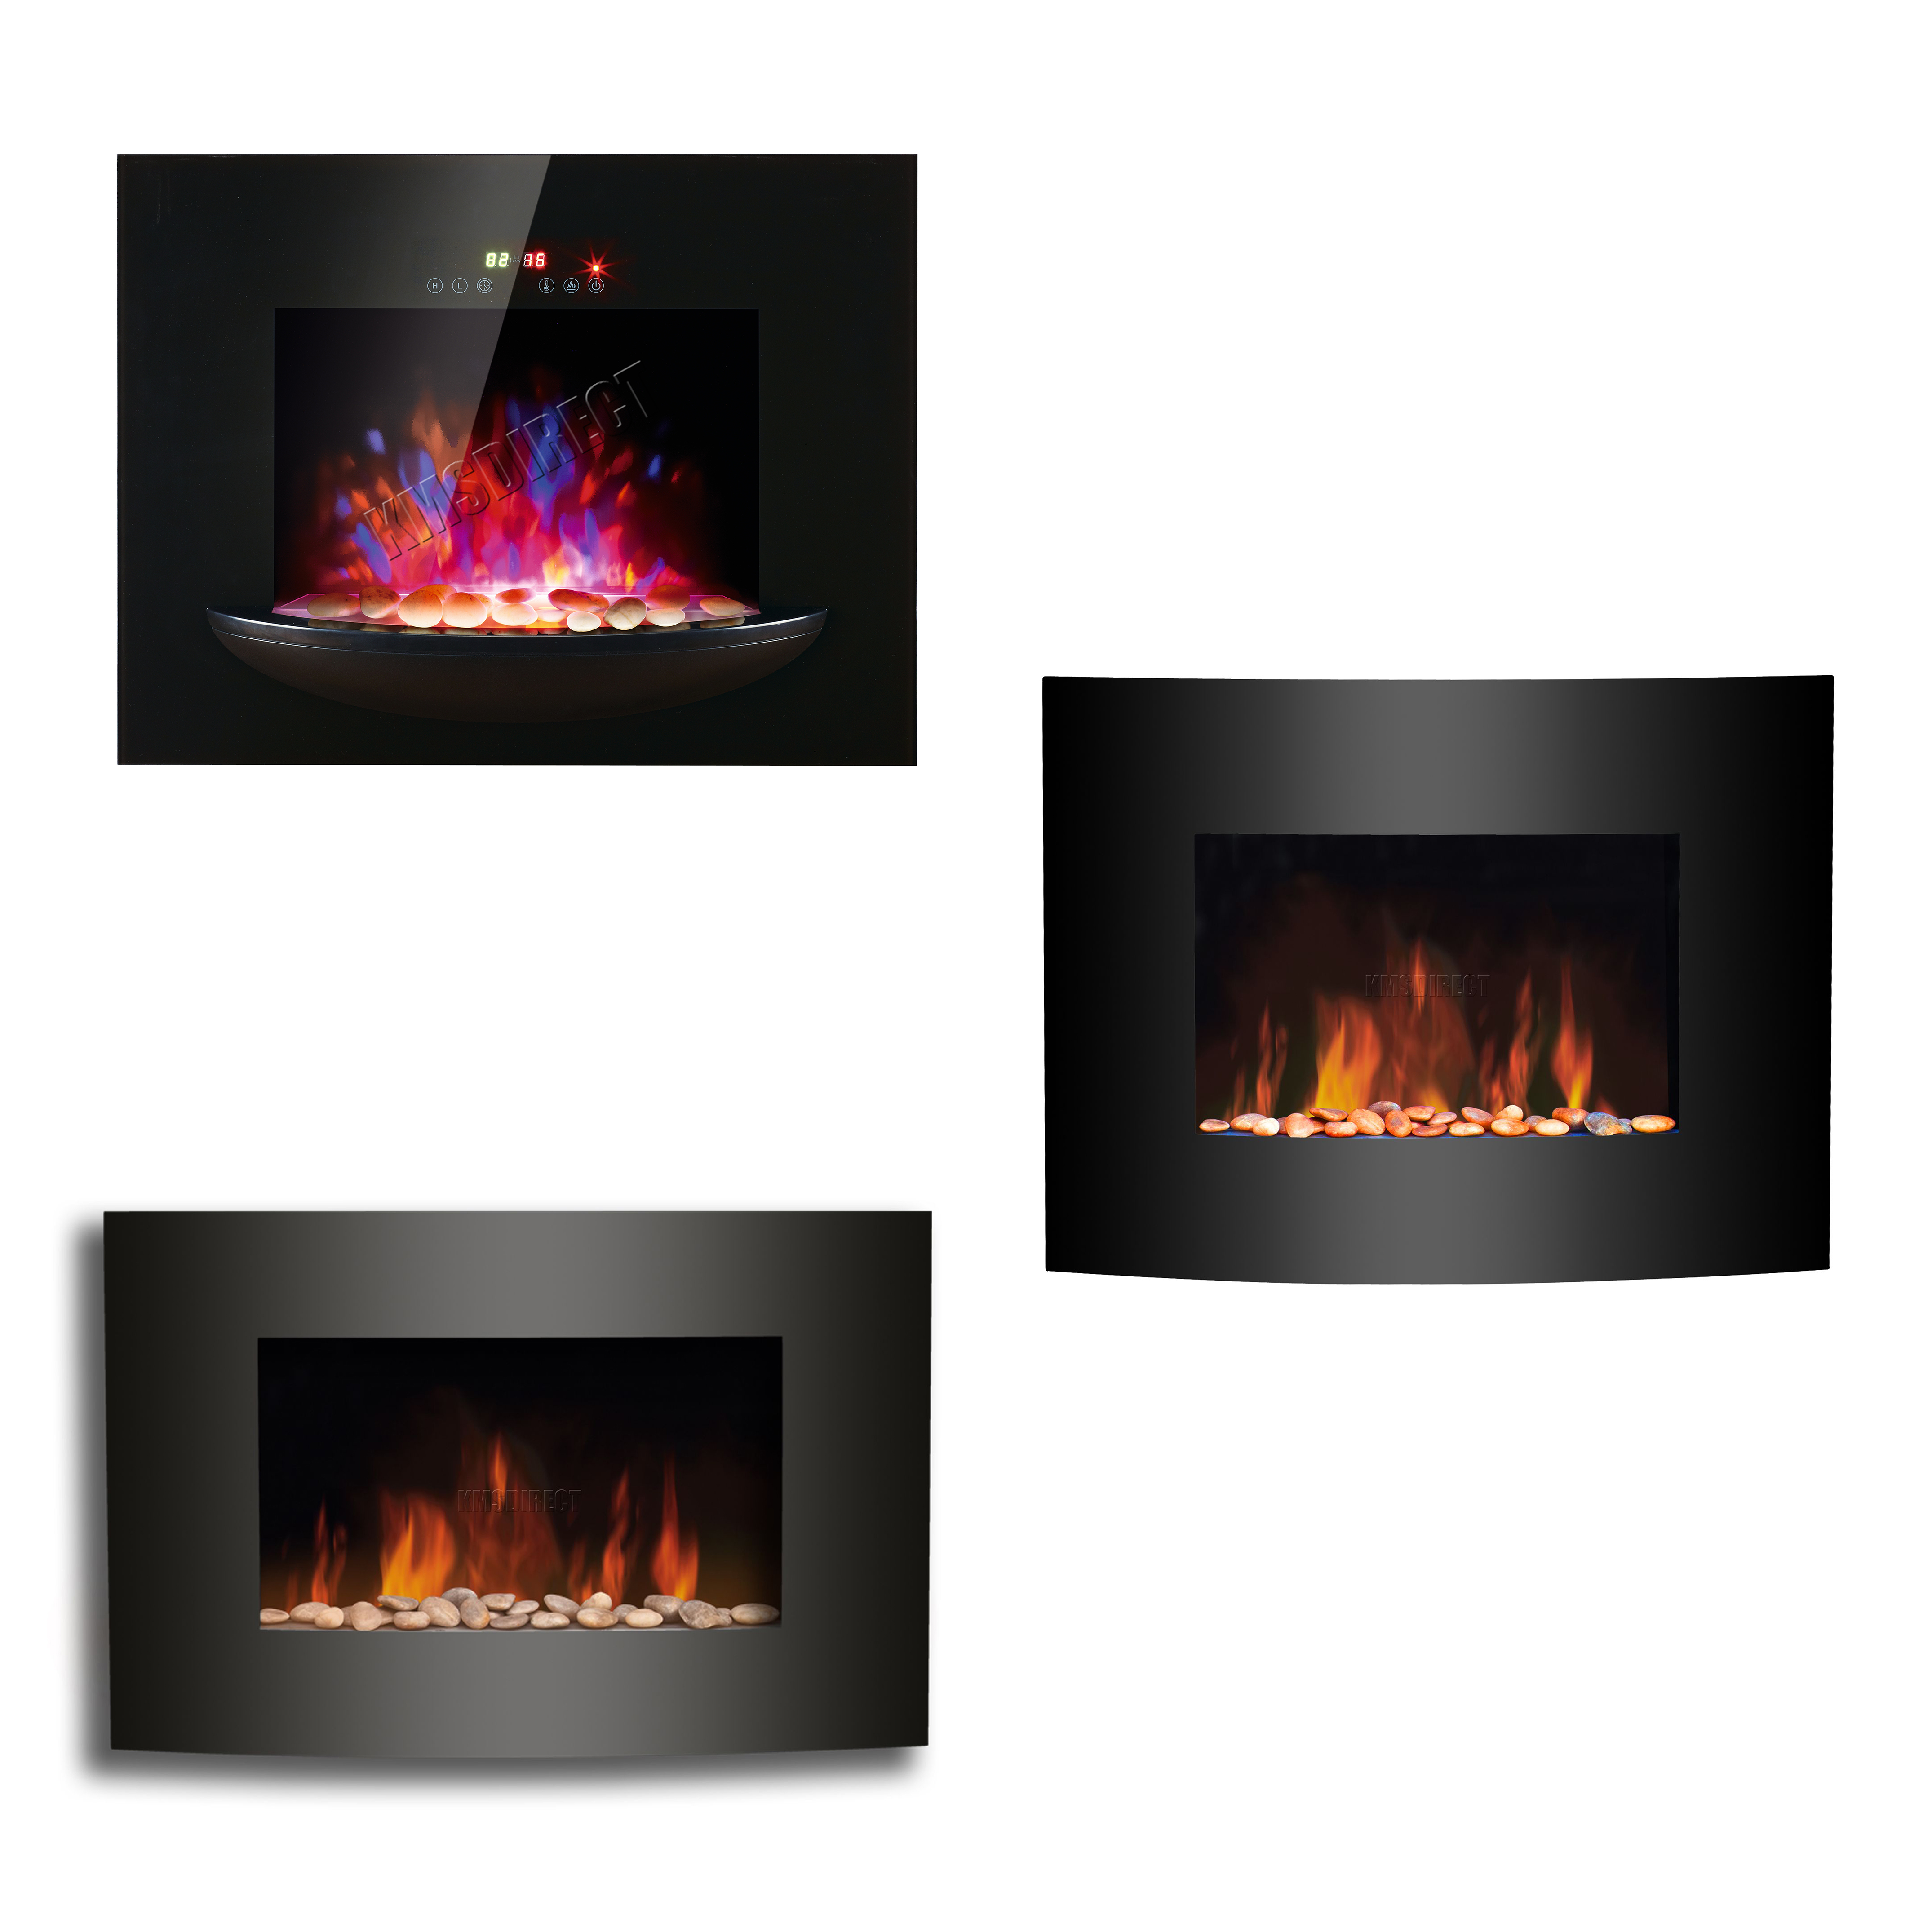 glass black ele electric curved heater wall fire var led fireglass fireplace mounted designs